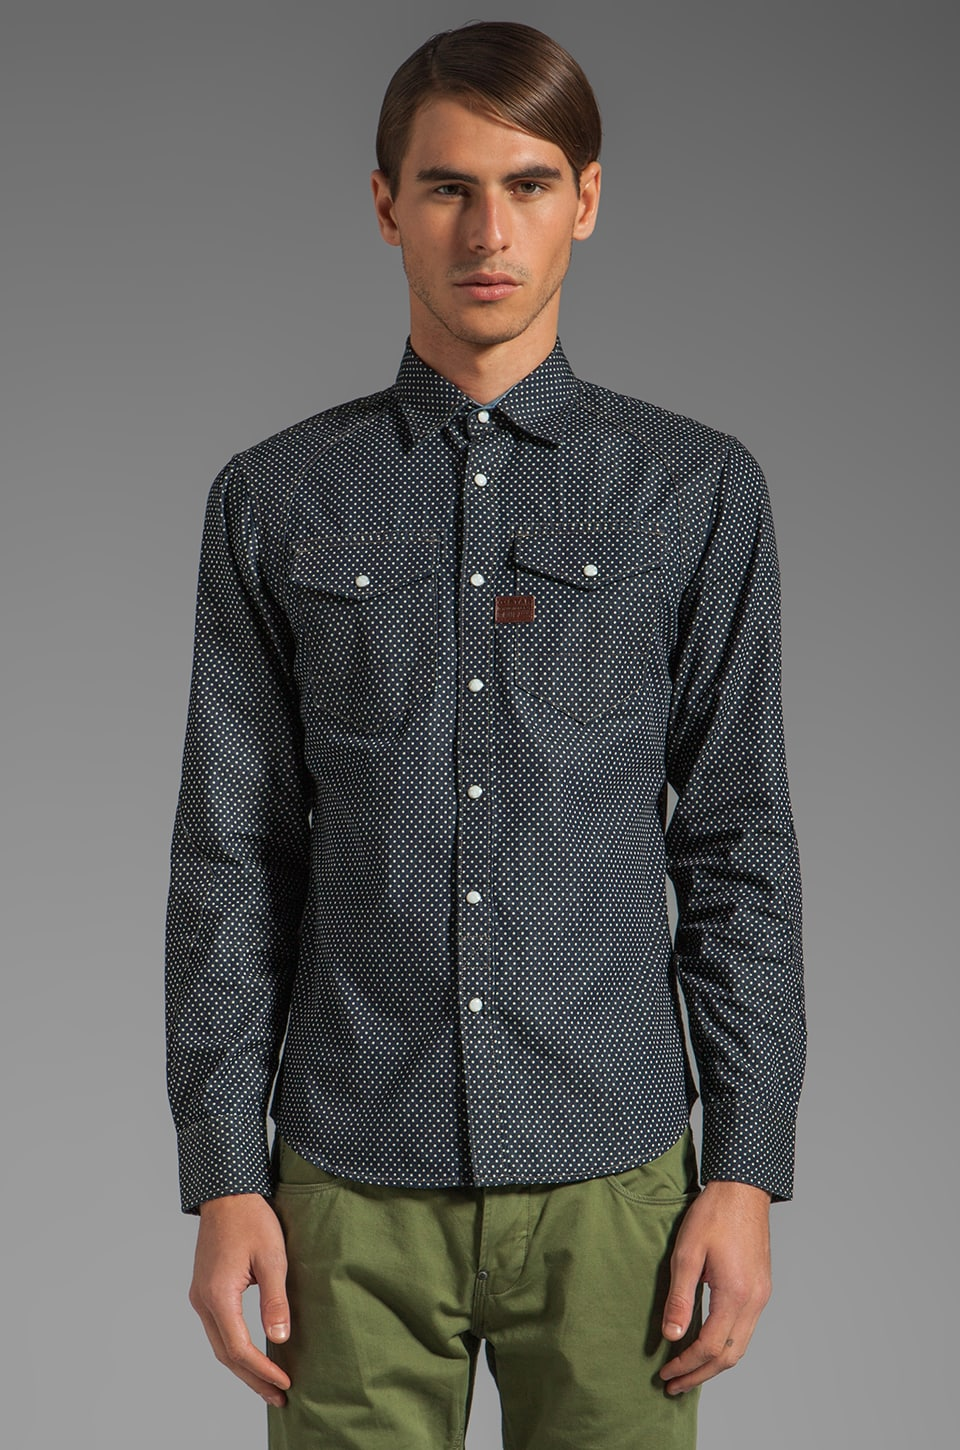 G-Star Arizona Dot Shirt in Dark Aged